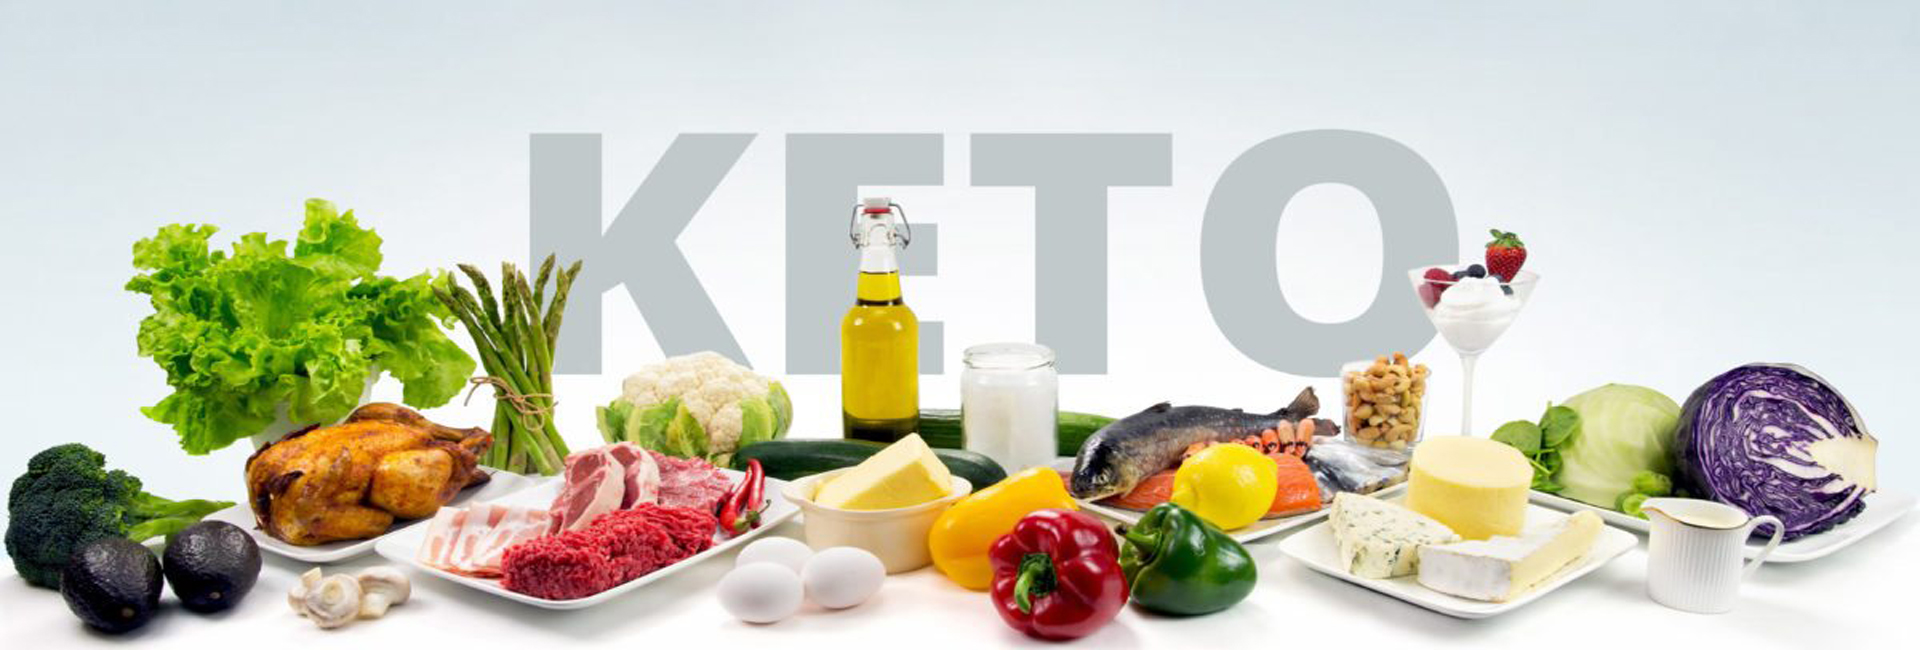 Keto Diet Plan In Habshan